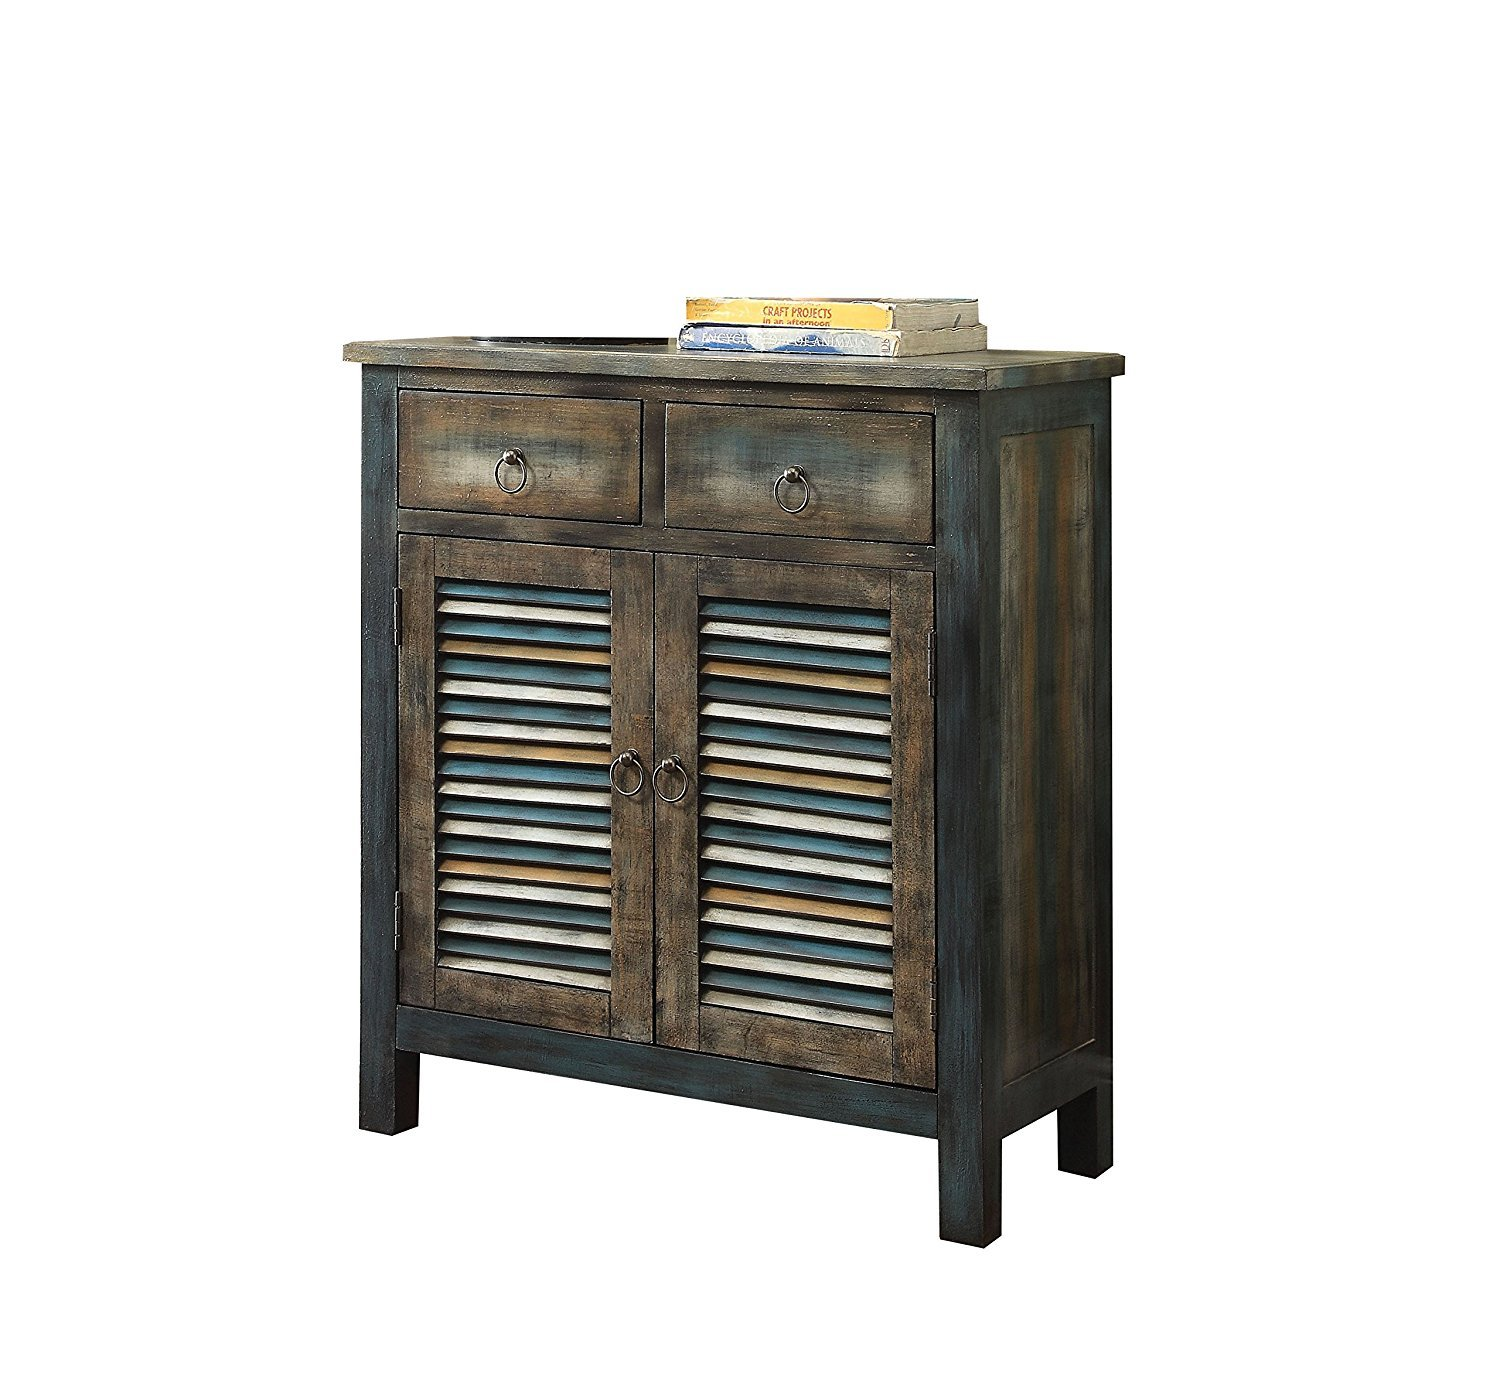 "Major-Q 9097253 35"" H Vintage Style Rectangular Antique Oak Teal Finish 2-Drawer 2-Door Wooden Console Table - Major-Q is a registered furniture trademark brand. Please search Major-Q for more high quality furniture related products All Major-Q Products will be covered with Limited Major-Q Warranty. Please buy with confidence. Console Table, 32"" x 15"" x 35""H - tv-stands, living-room-furniture, living-room - 71E4wzj9G4L -"